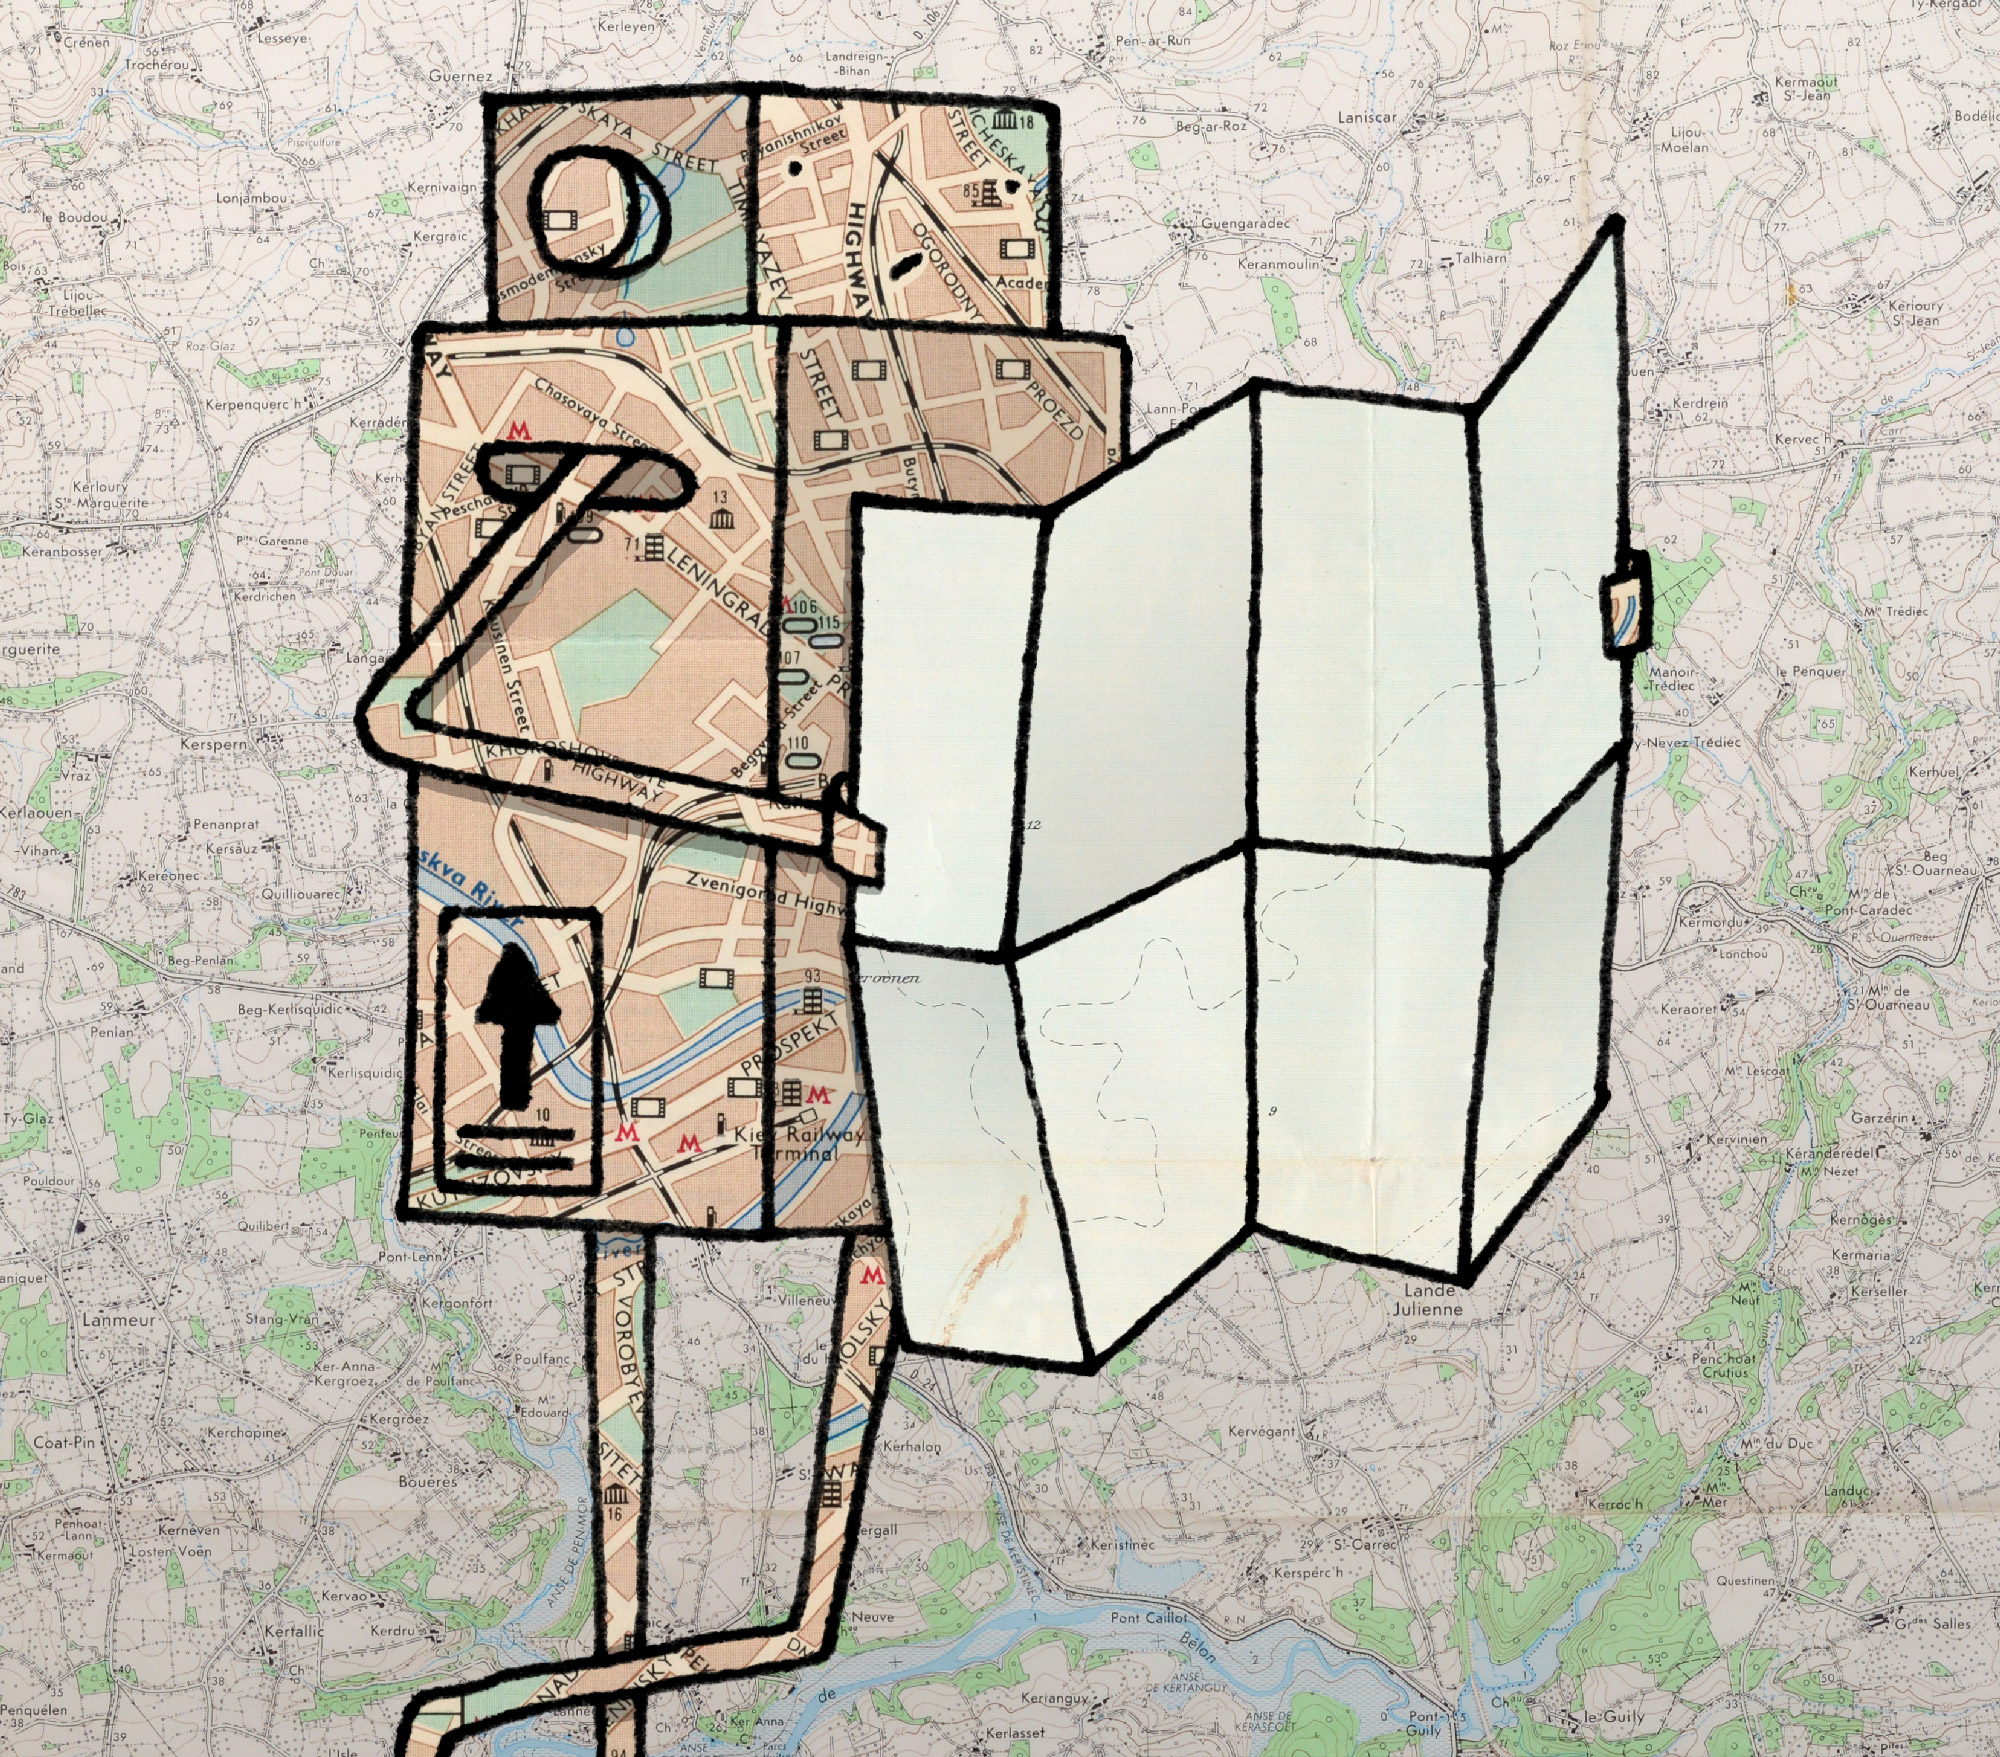 An illustration of a lost robot attempting to look at a paper map